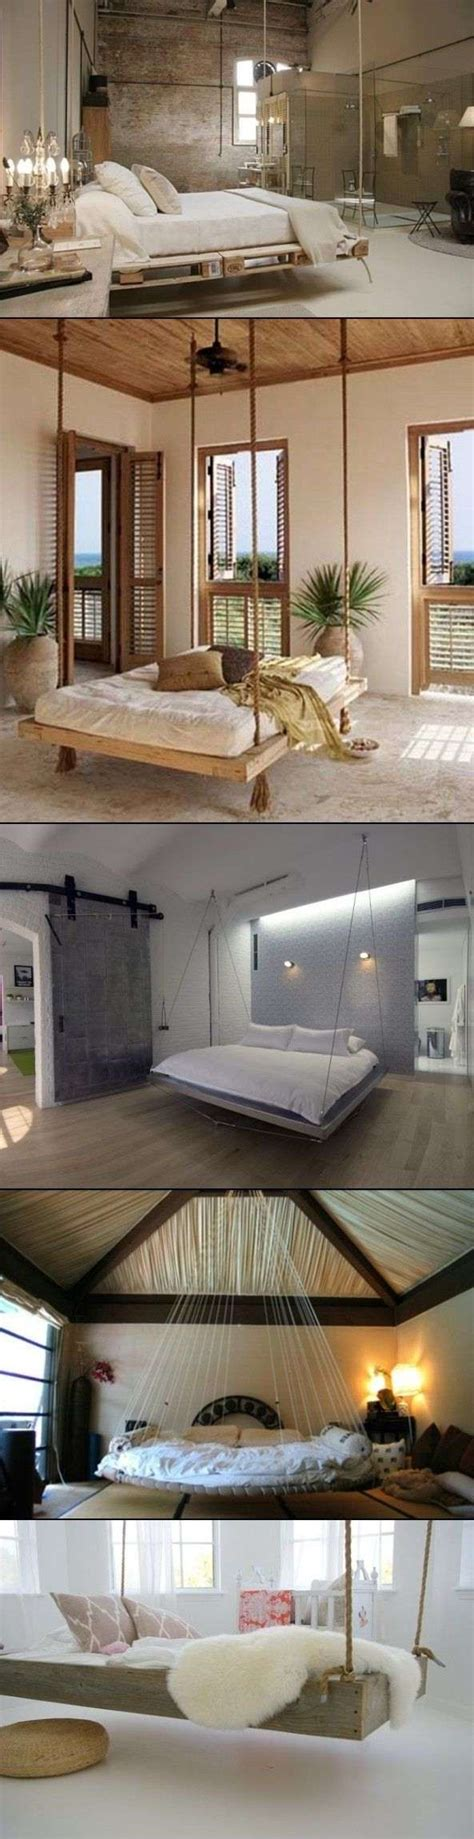 Hanging Pallet Bed by Amazing Interior Design